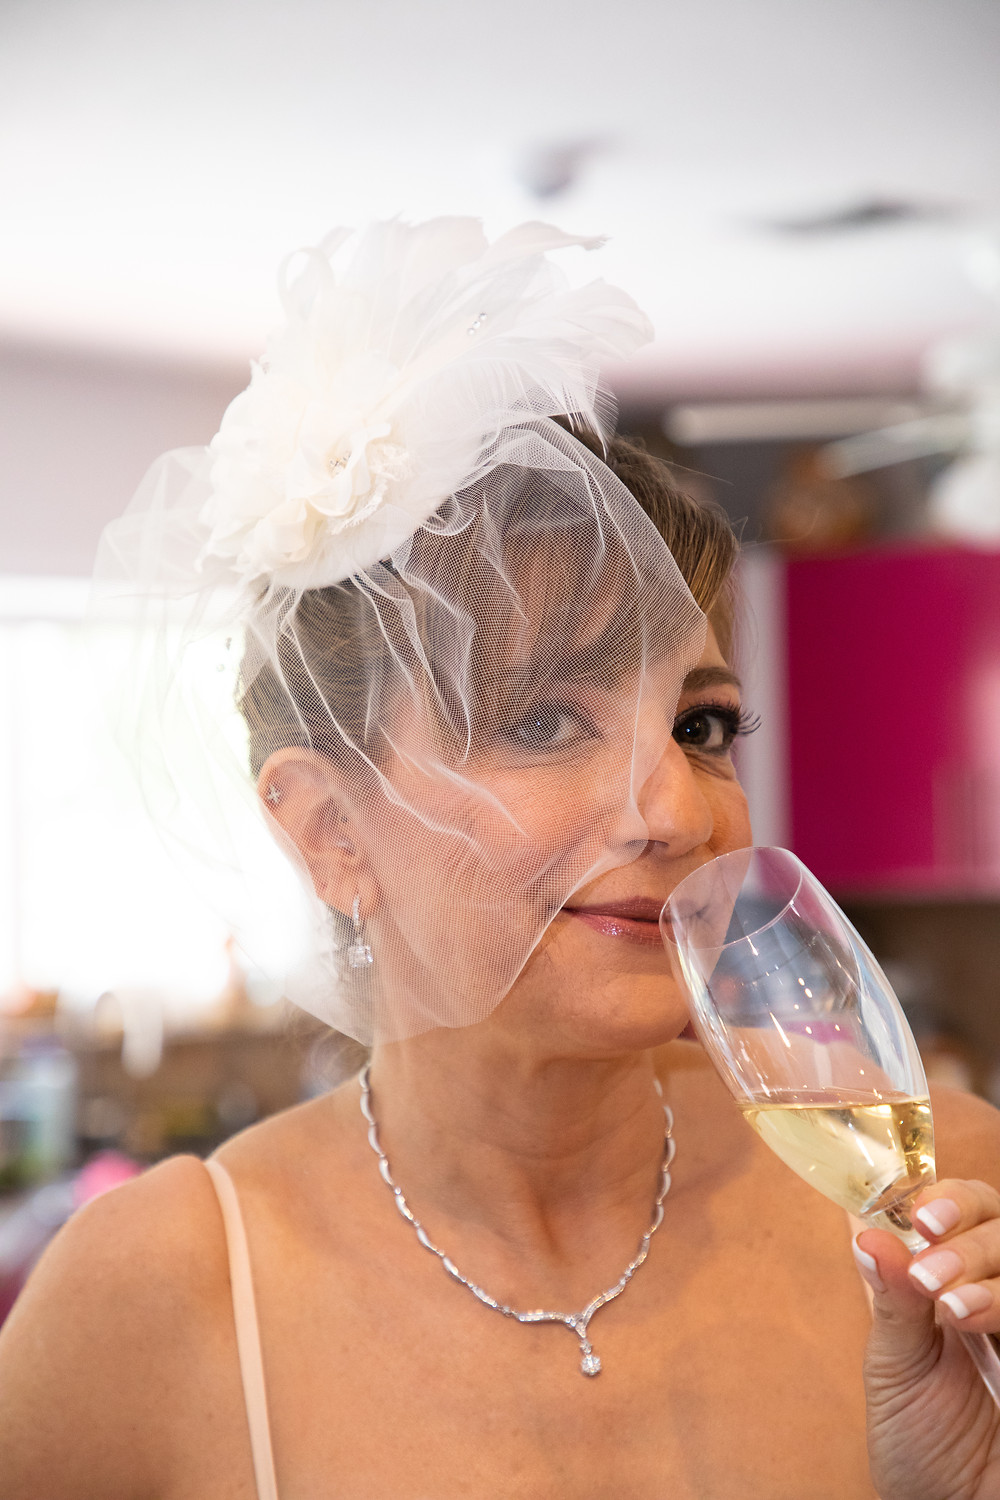 Miami wedding photographer captures image of bride with veil drinking from a fancy glass.